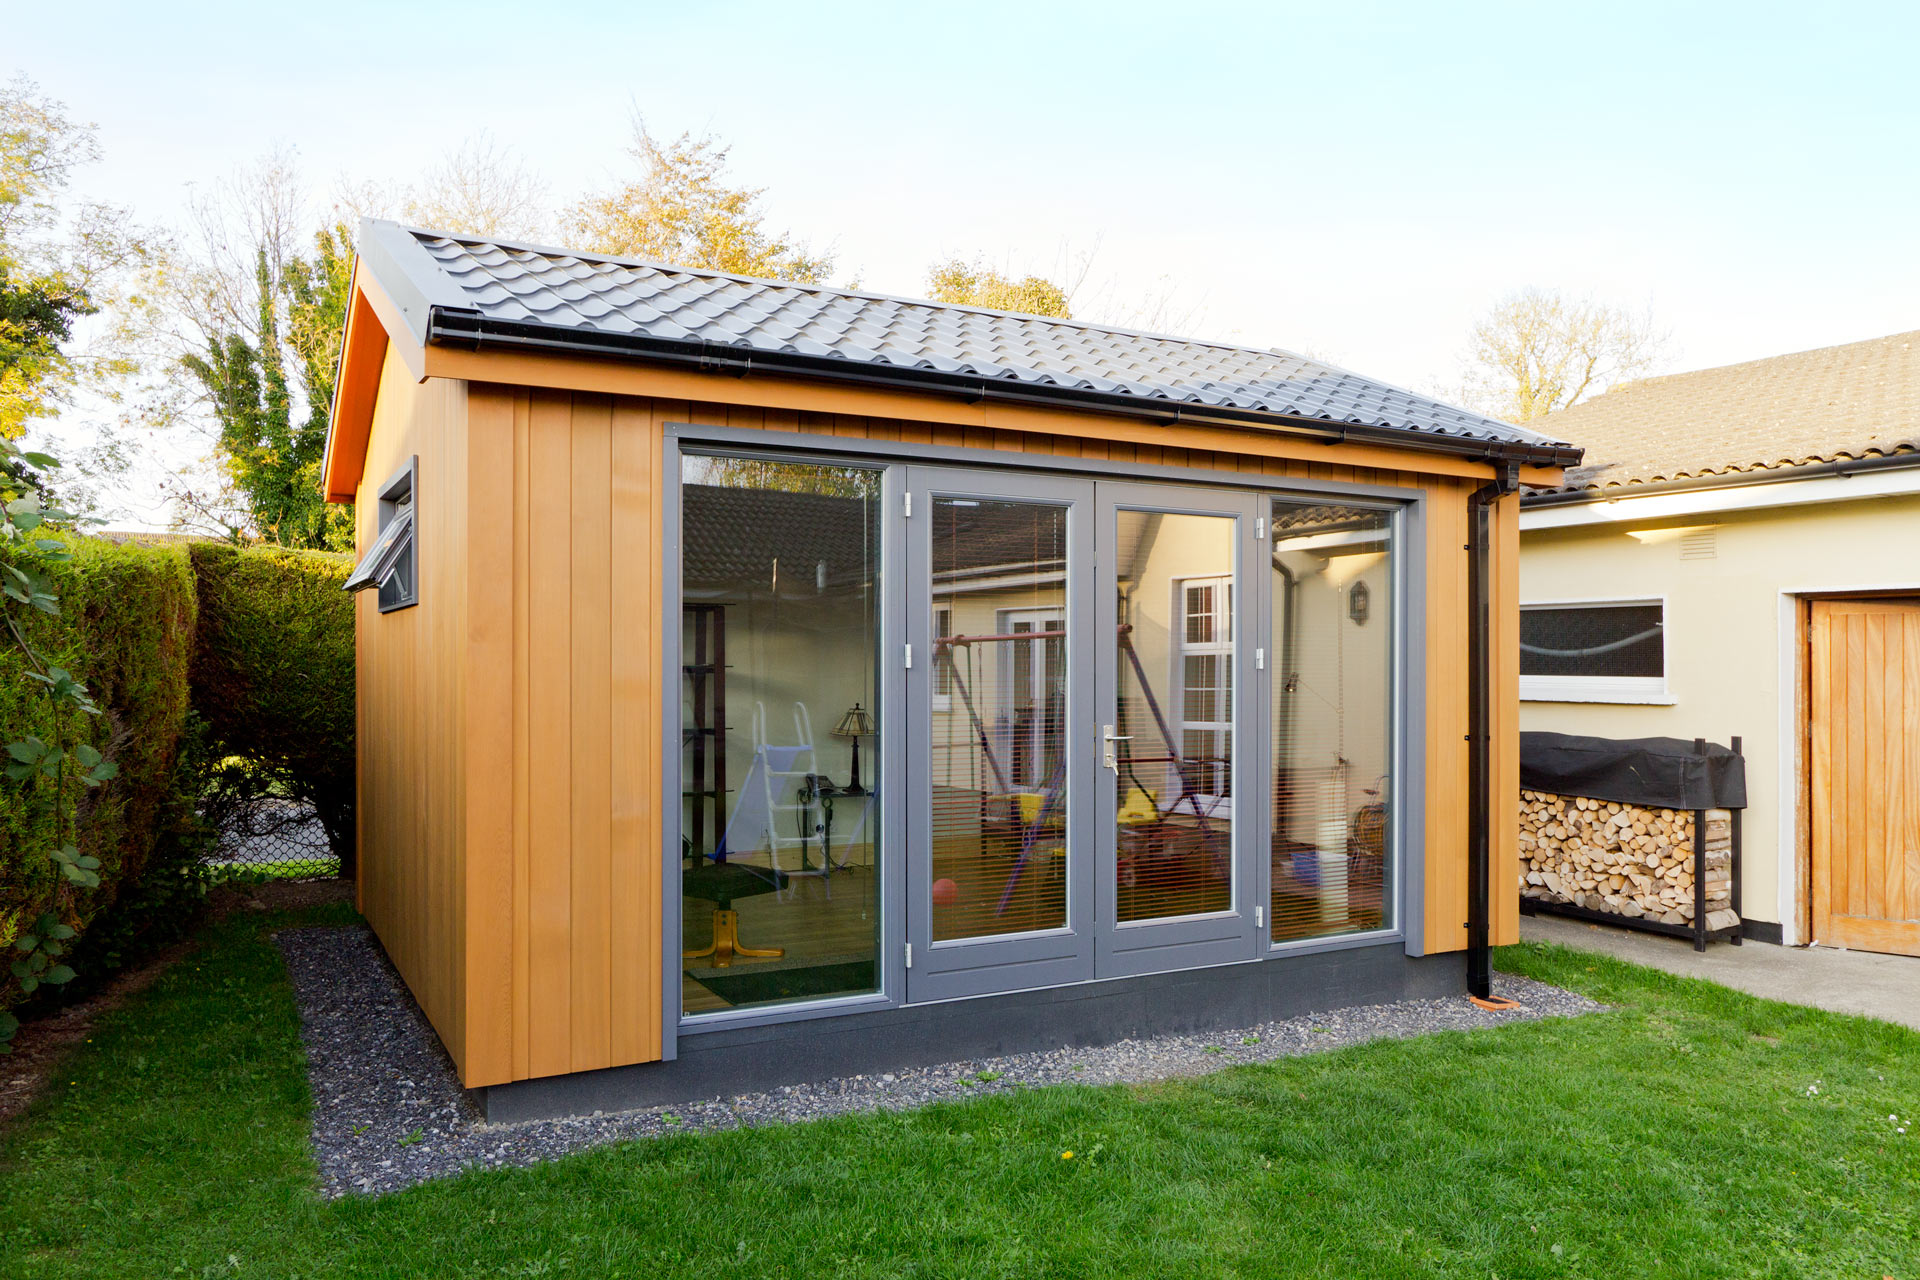 Prefab garden rooms ireland garden ftempo for Prefabricated garden rooms